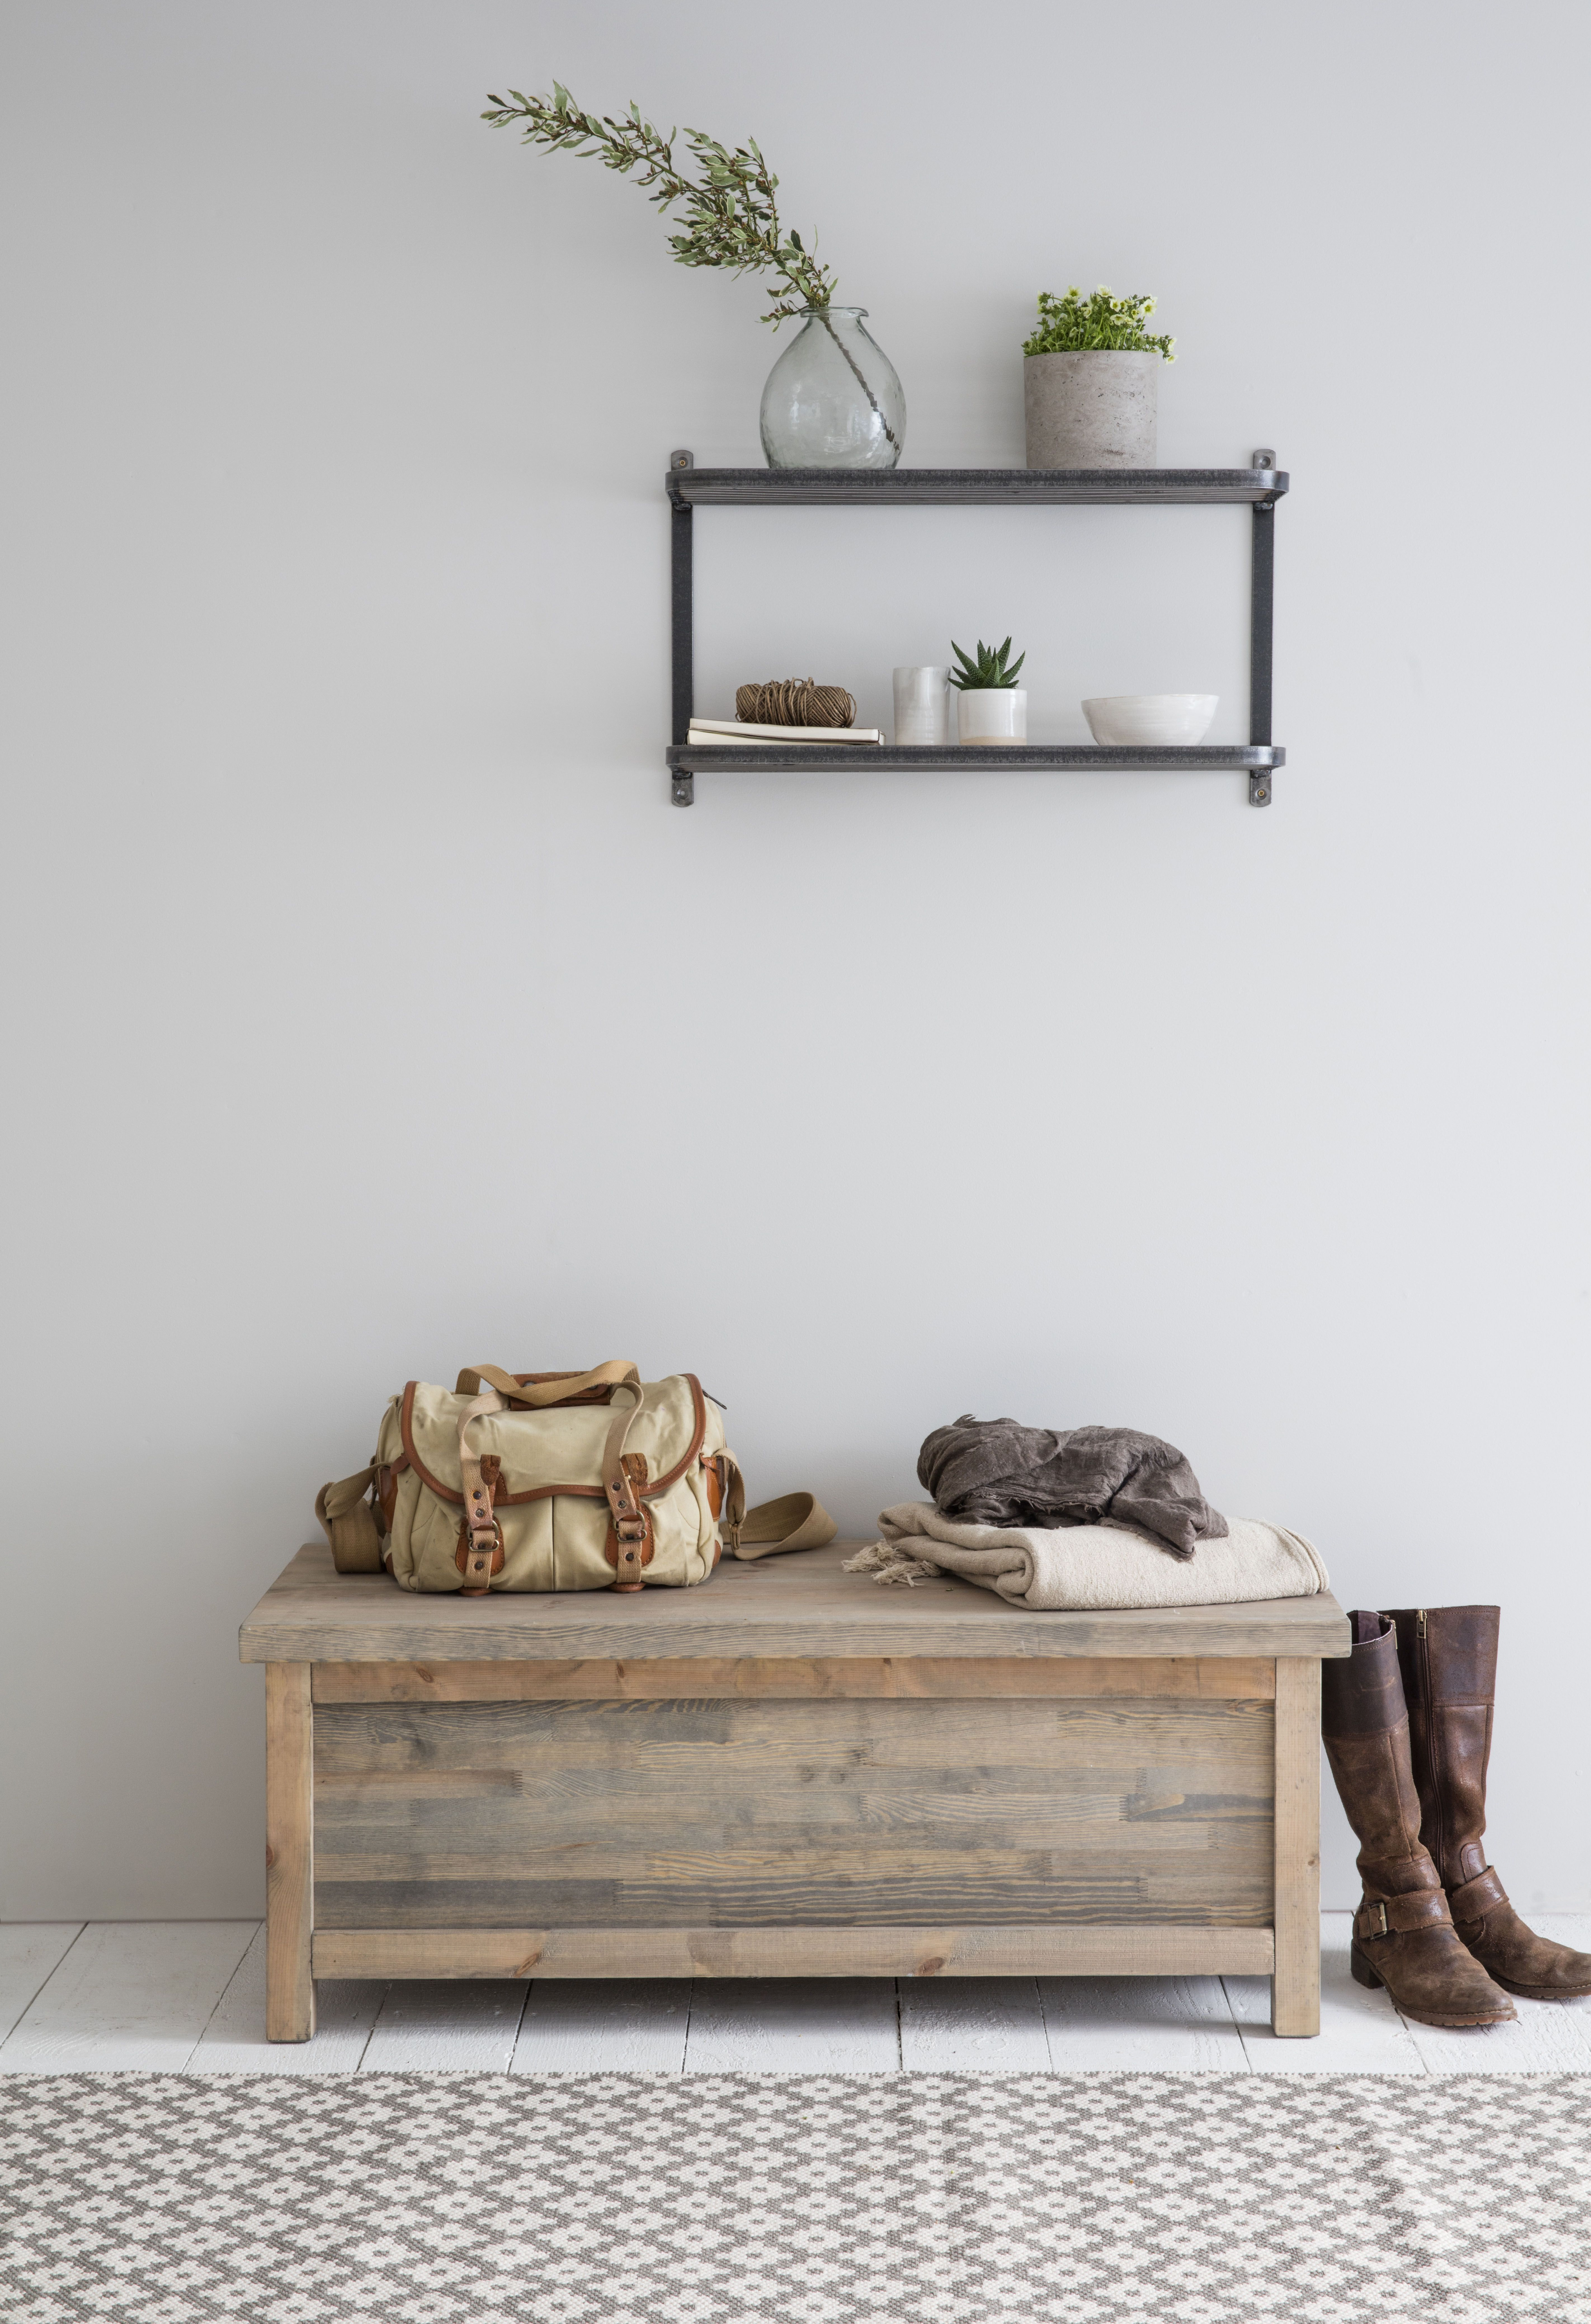 Hallway storage and seating  Wooden Hallway Storage Bench with Rustic Charm  Shoes Bags